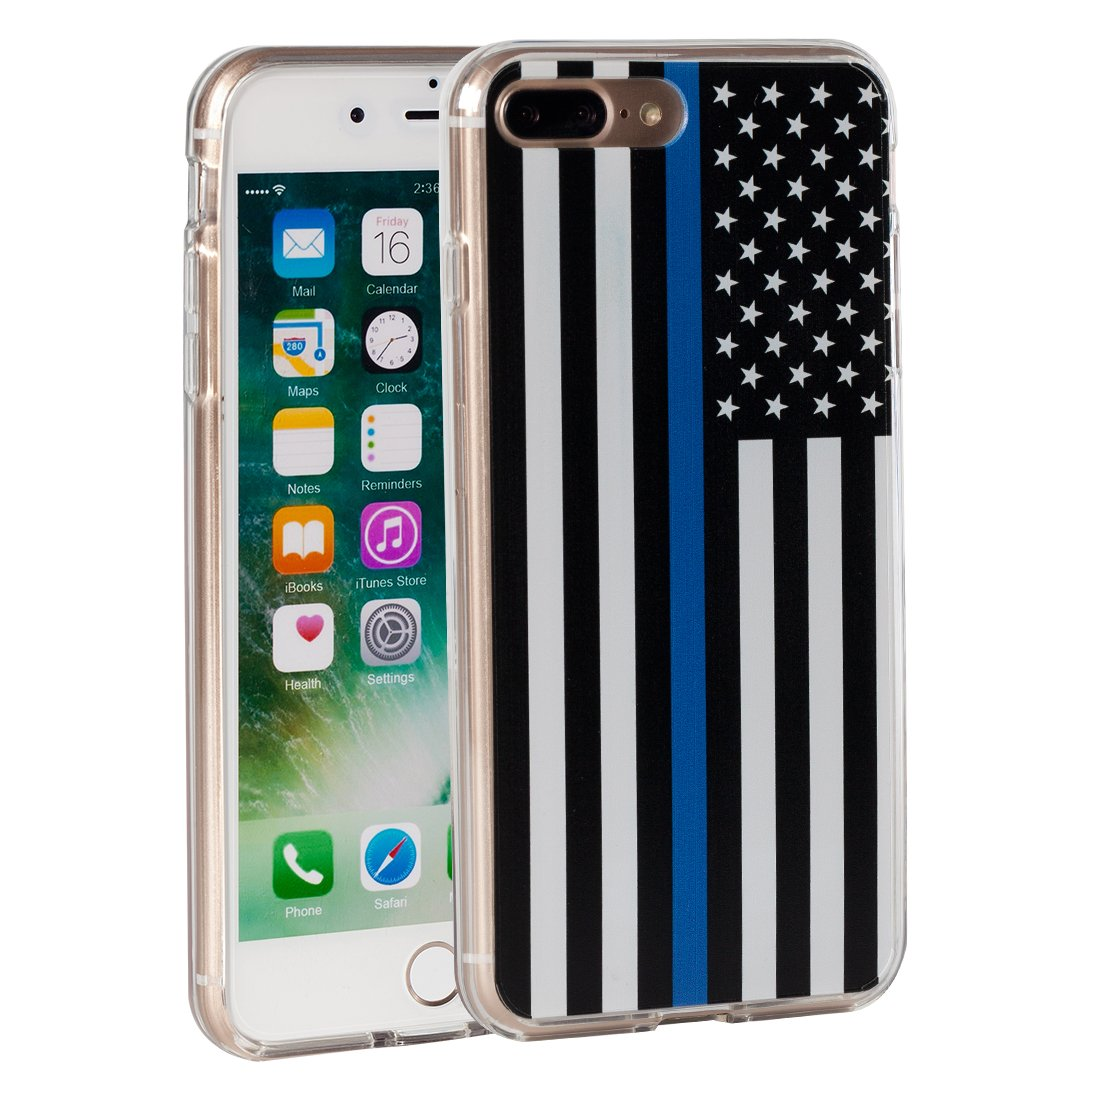 the latest 53f98 8fe00 iPhone 7 Plus Case,iPhone 8 Plus Case,AIRWEE Thin Blue Line US Flag Pattern  Slim Clear Acrylic PC Hard Back Cover with Soft Rubber TPU Bumper Hybrid ...